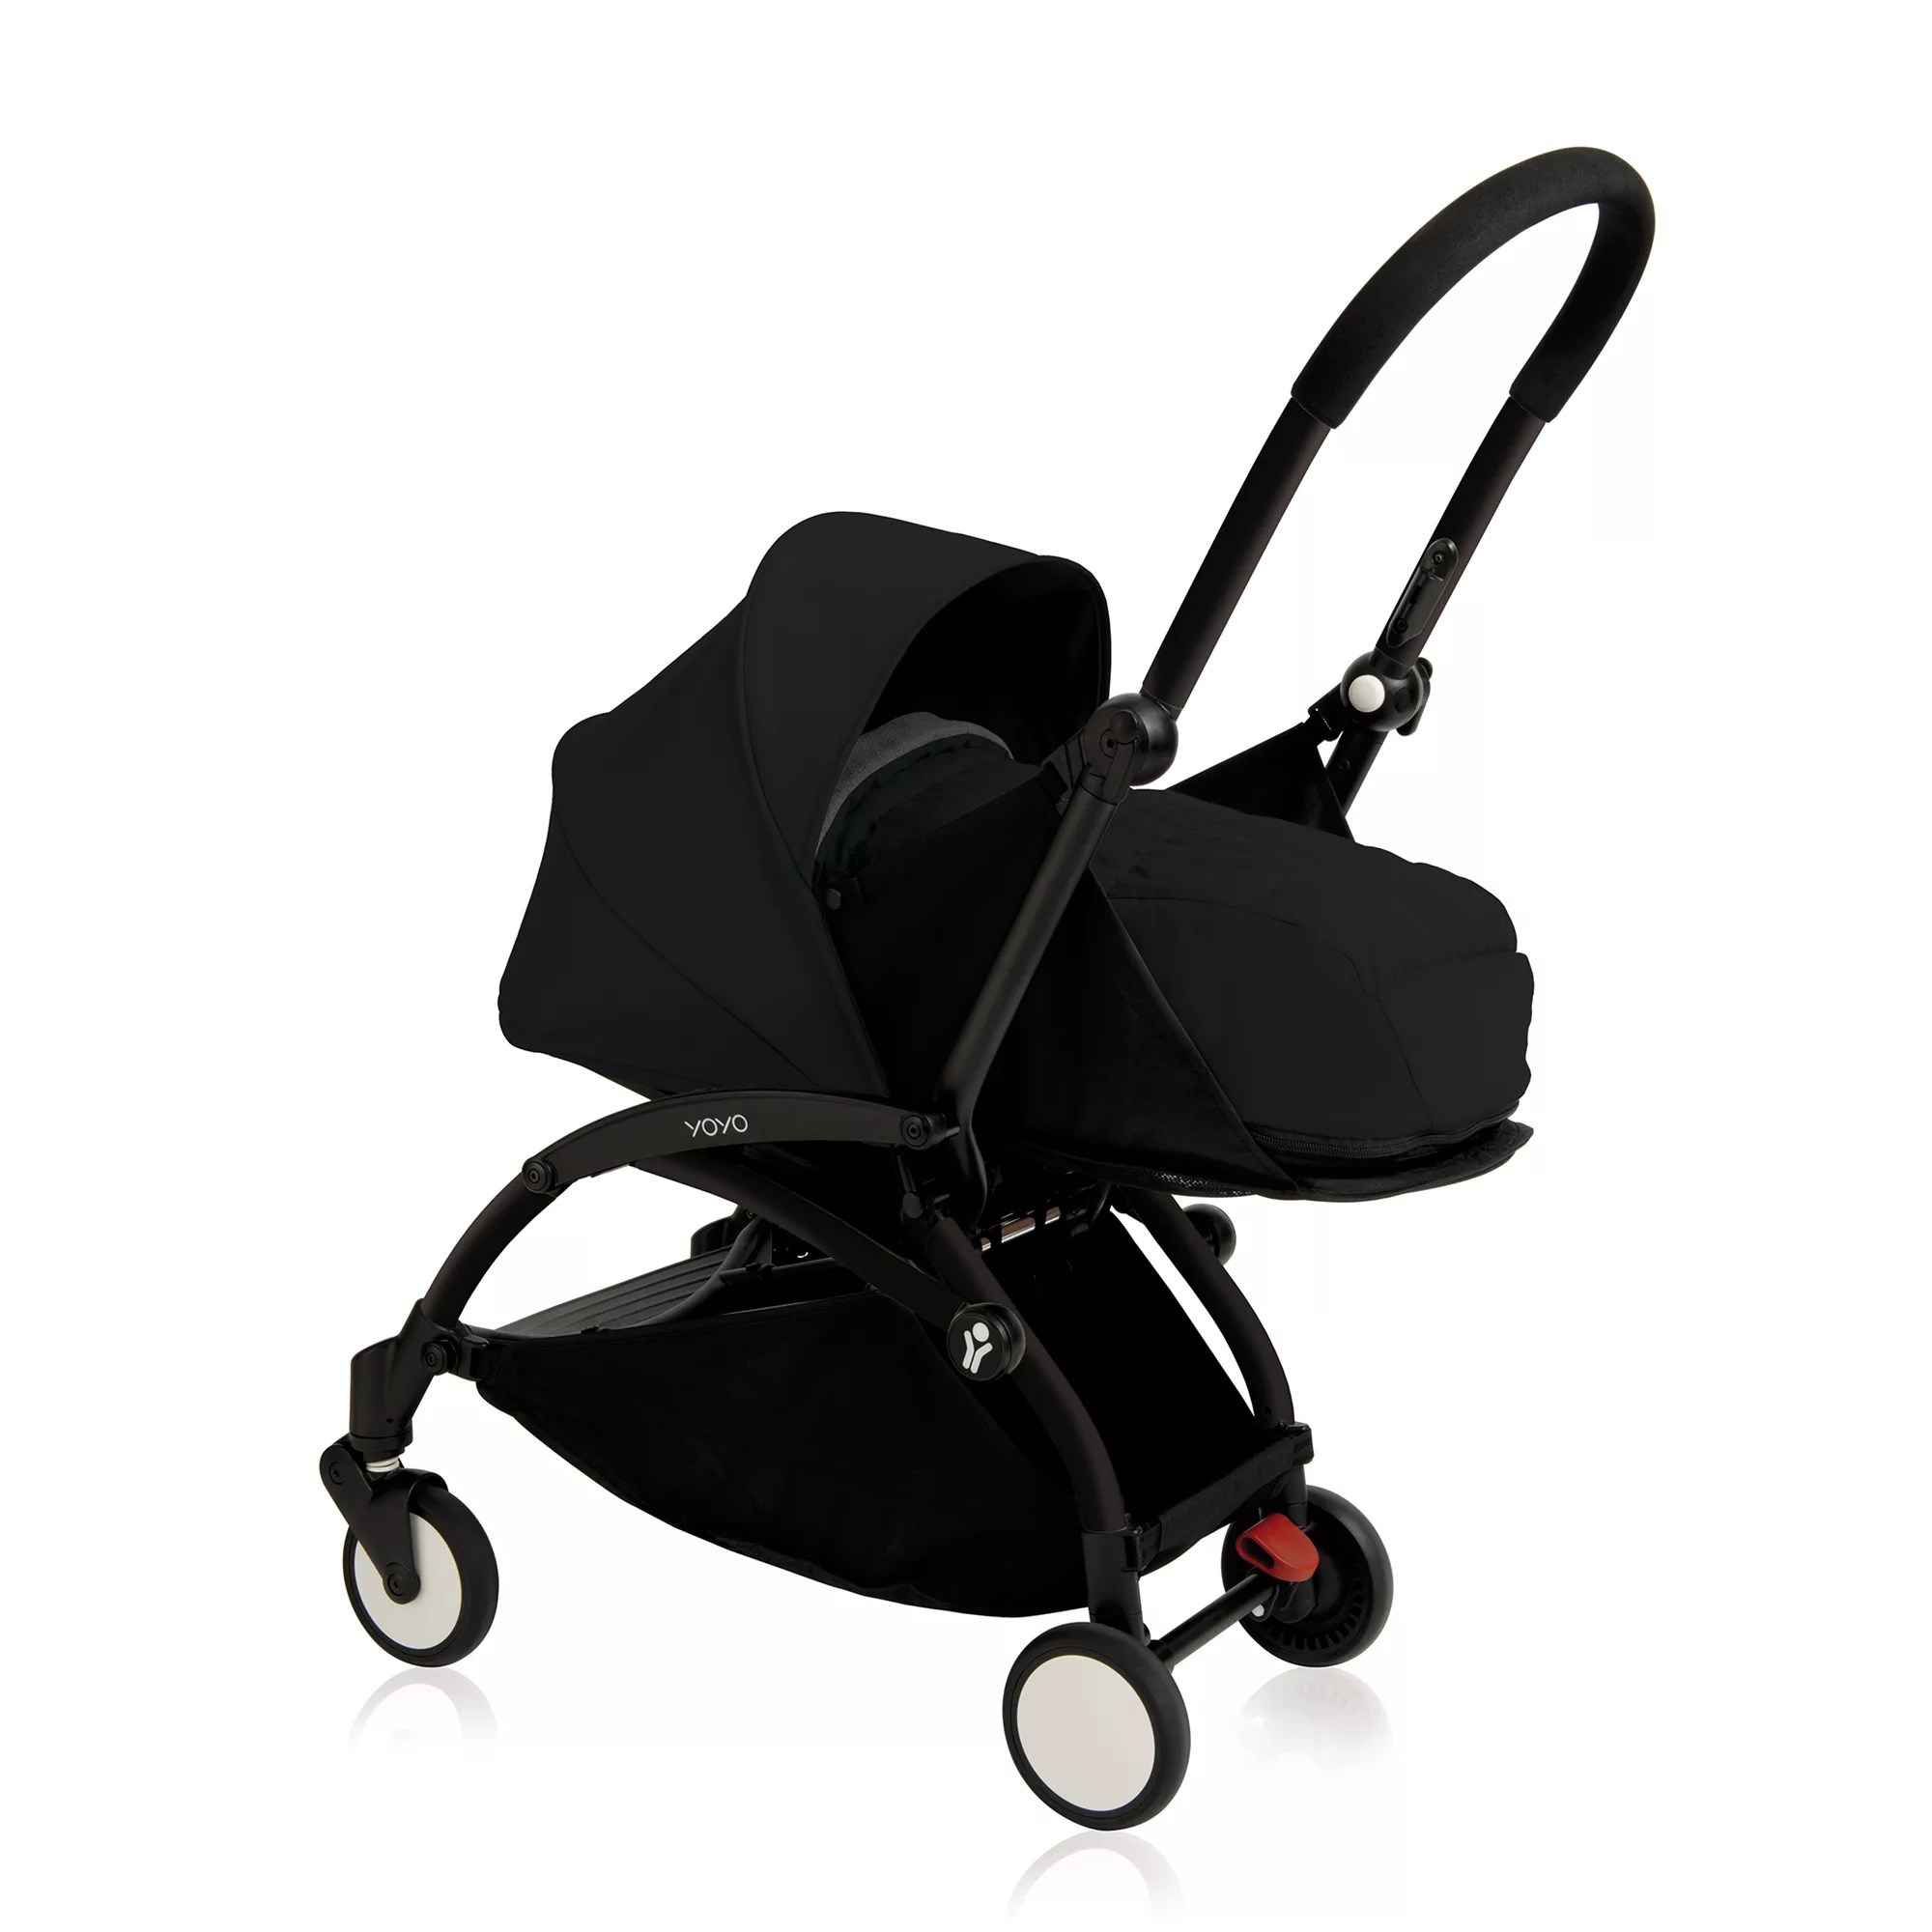 Newborn Stroller Nz Babyzen Yoyo Pushchair Black Black